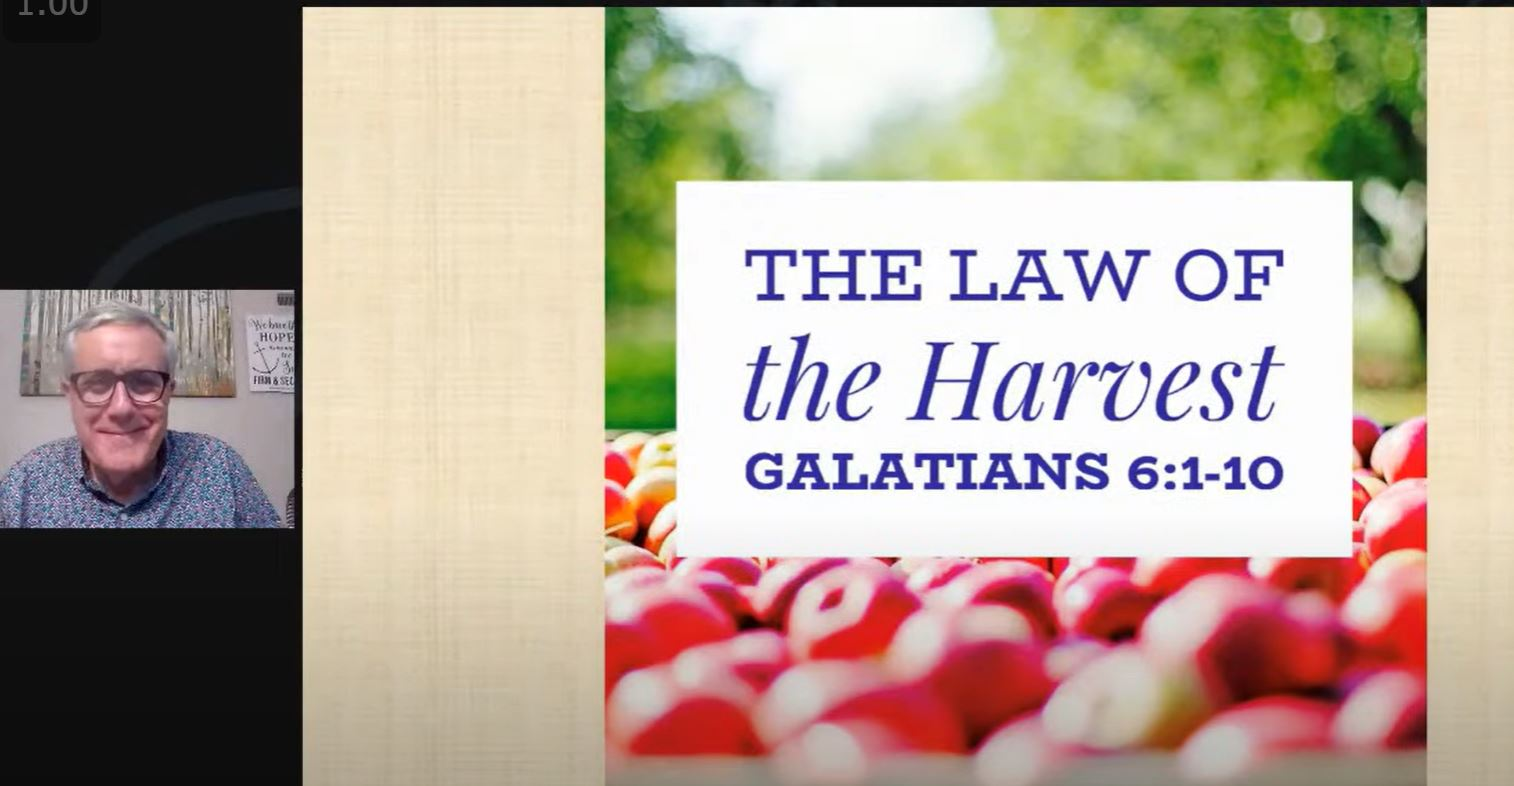 The Law of the Harvest (Galatians 6:1-10)